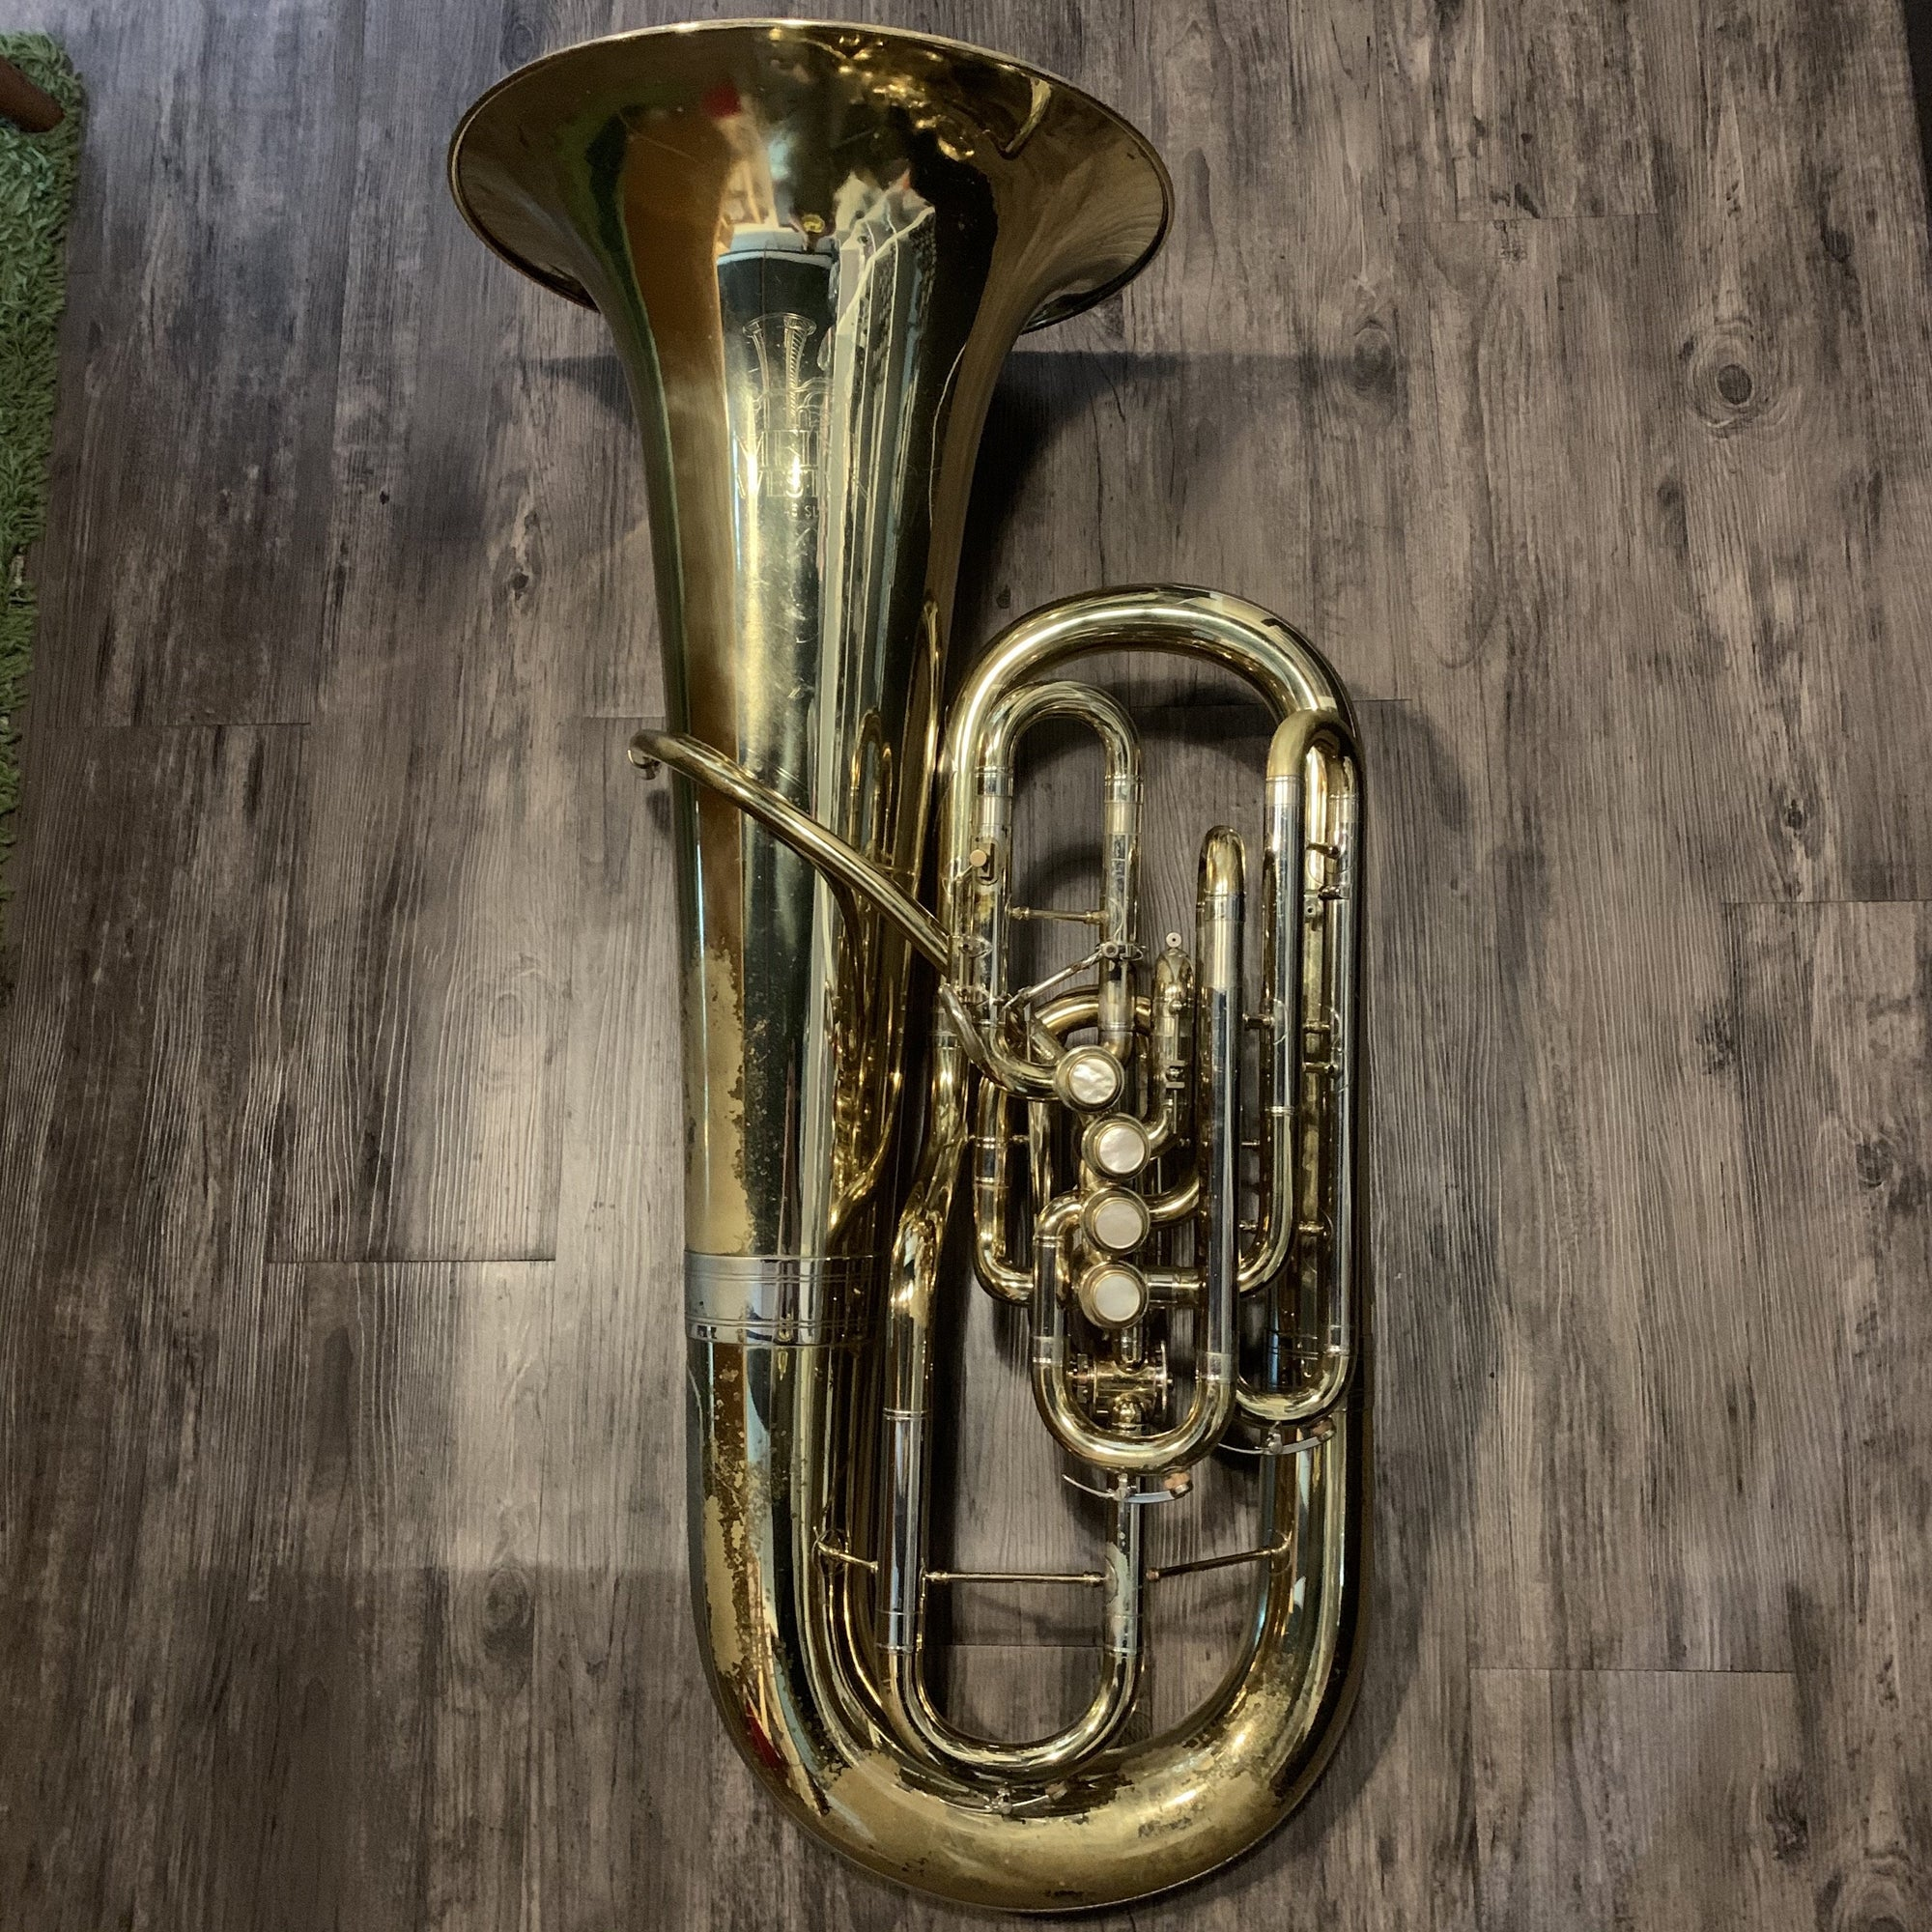 Meinl Weston - 45SLP 6/4 F Tuba (Pre-Owned)-Tuba-Meinl Weston-Music Elements